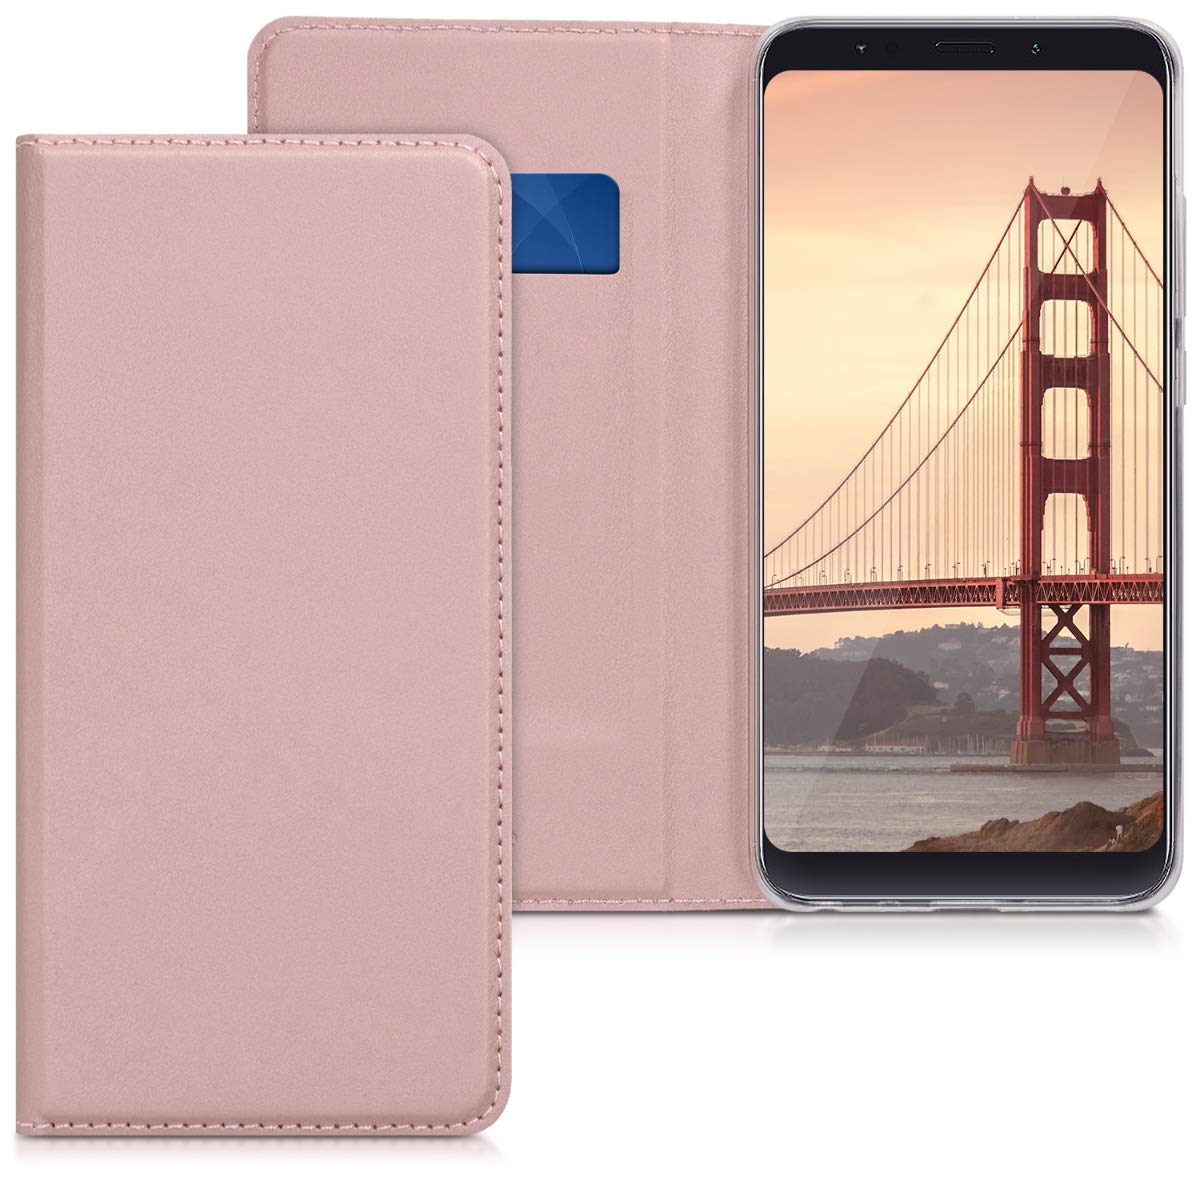 kwmobile Flip Case for Xiaomi Redmi Note 5 (Global Version) / Note 5 Pro - Smooth PU Leather Wallet Folio Cover with Stand Feature - Black KW-Commerce 45448.01_m000948